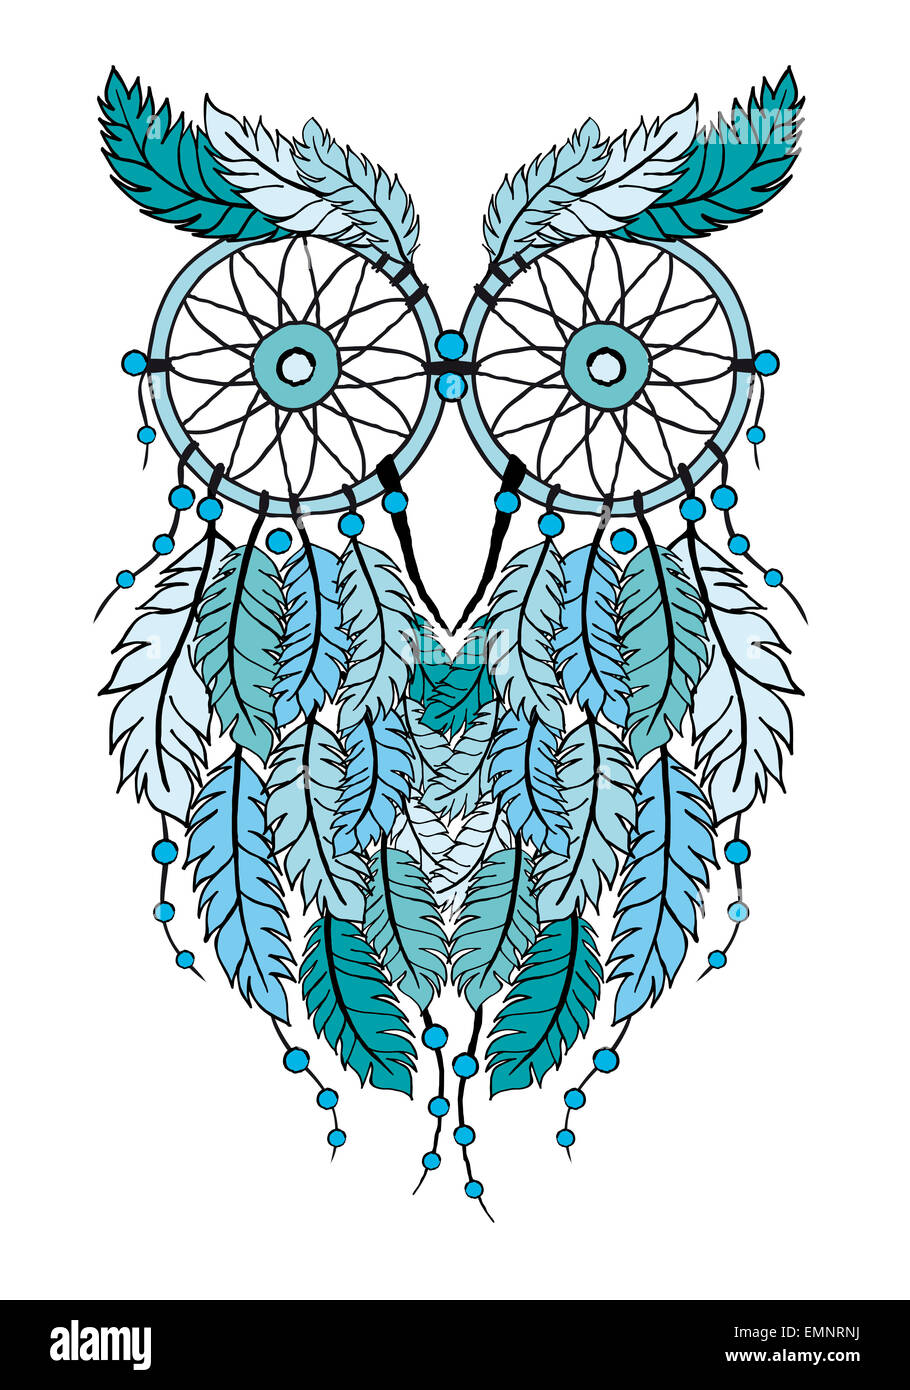 Owl dreamcatcher drawing - photo#12